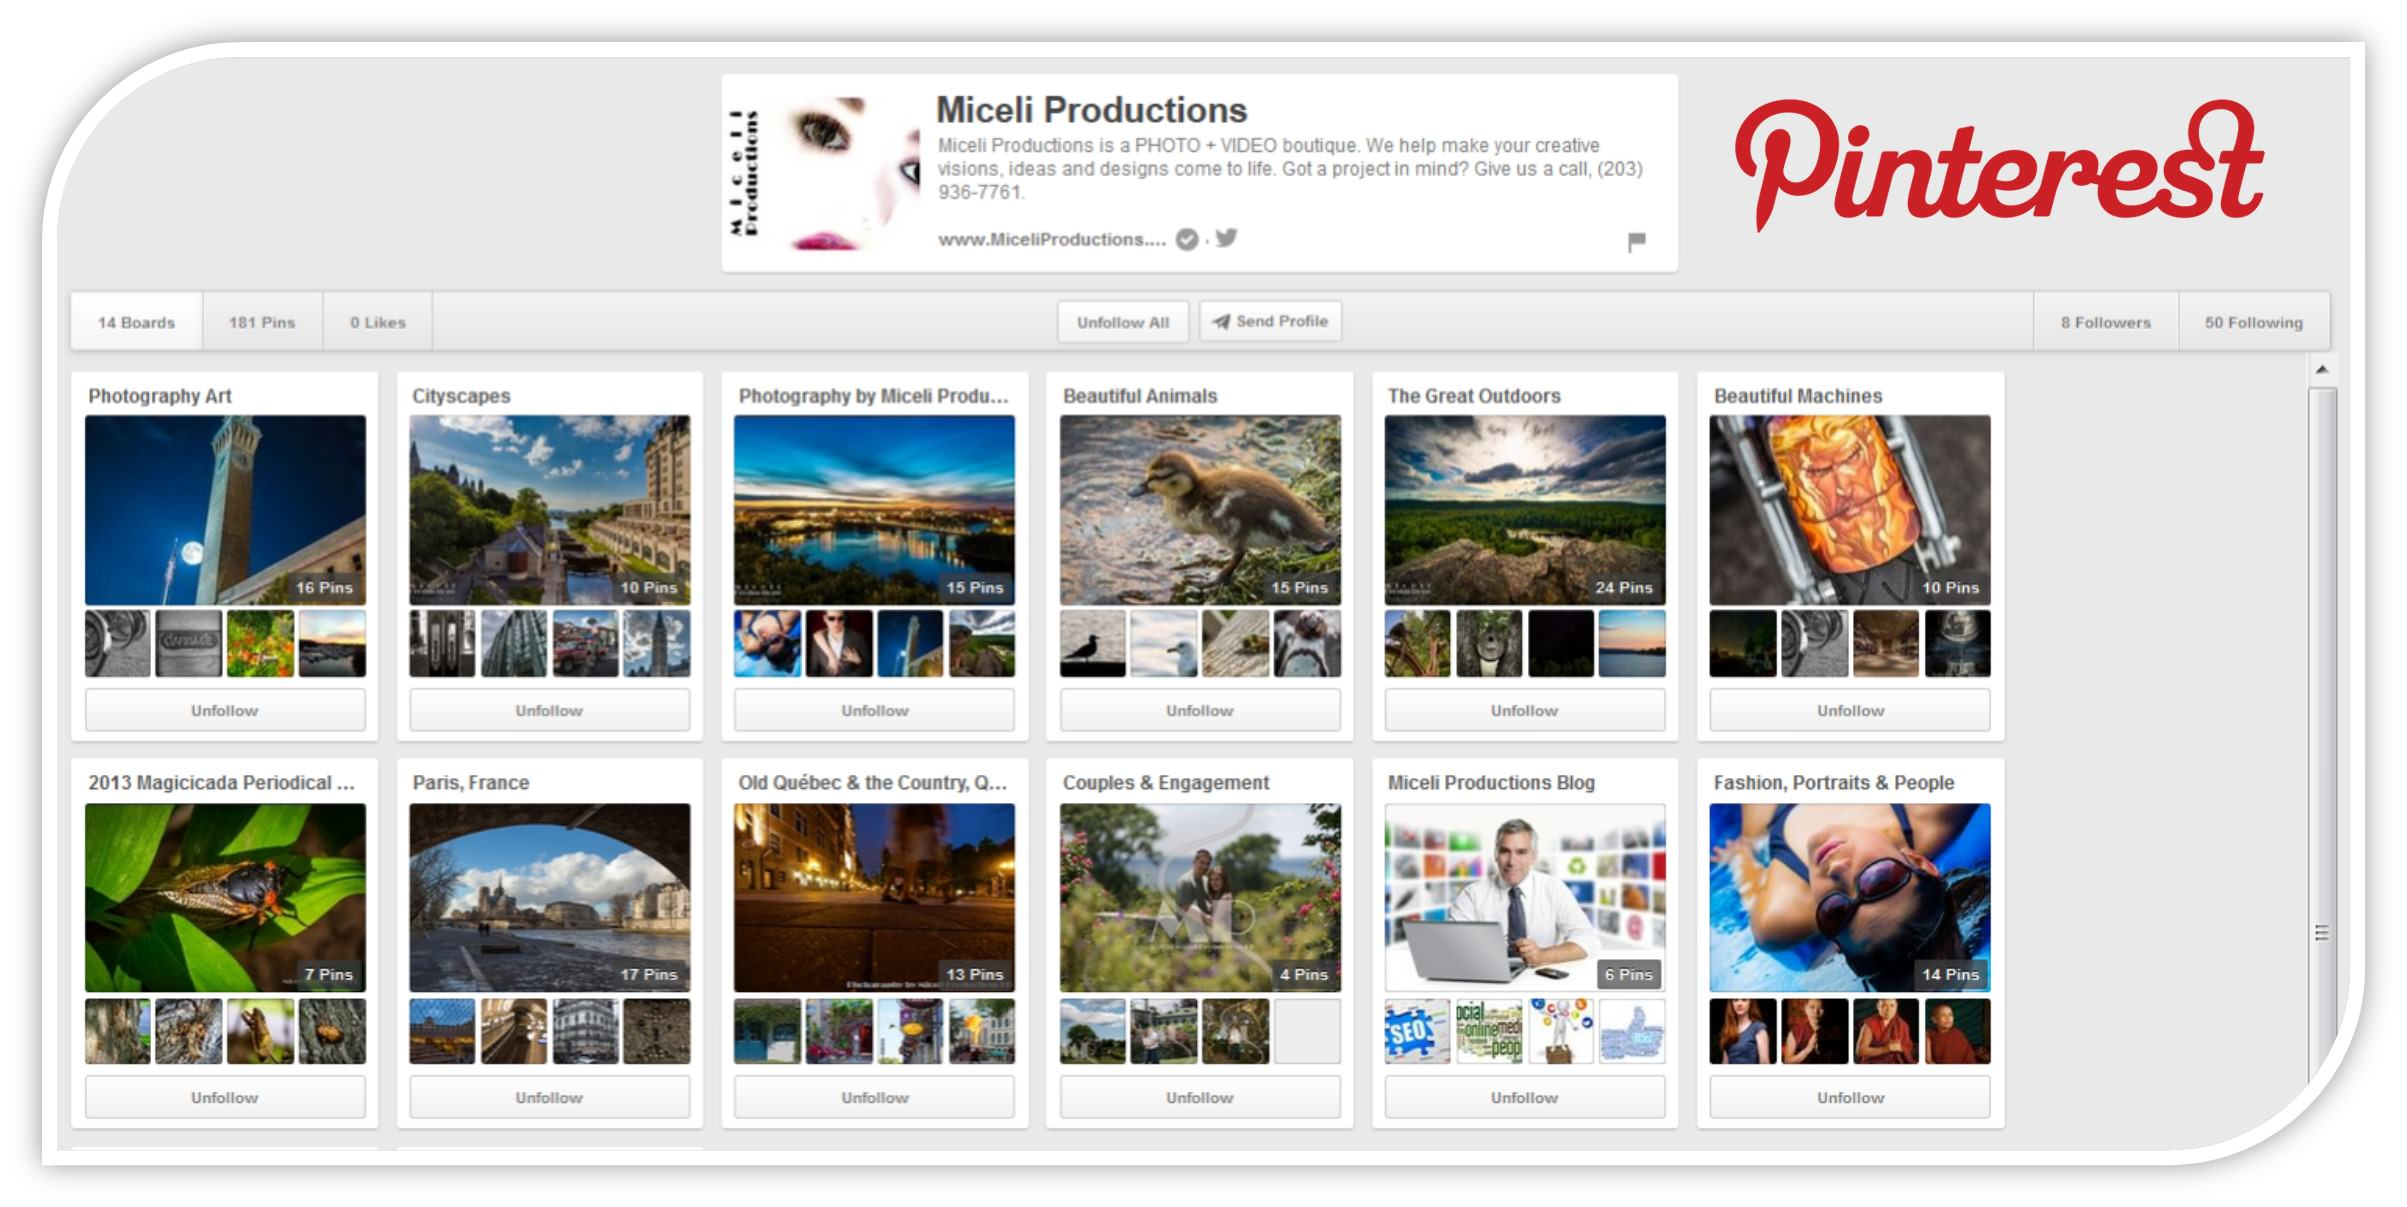 miceli productions Pinterest